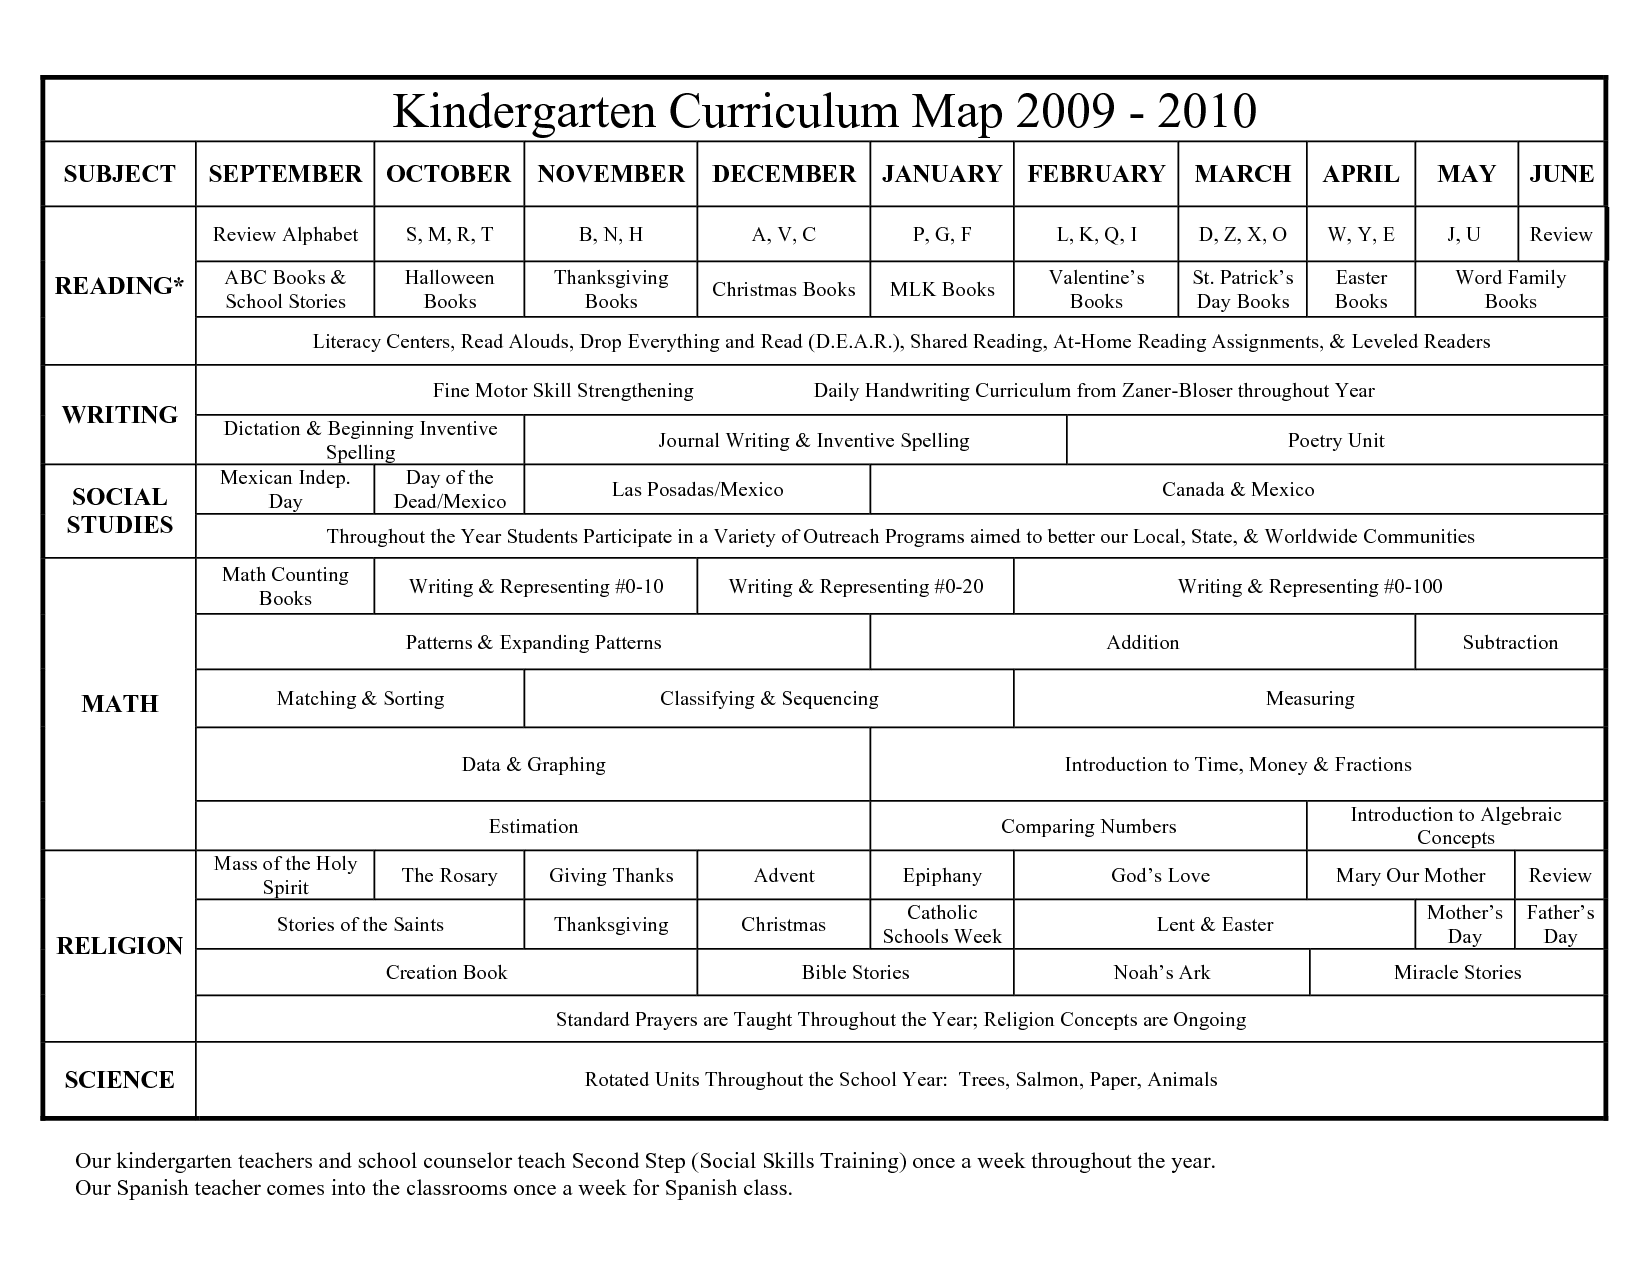 Kindergarten curriculum map google search school for Music curriculum map template